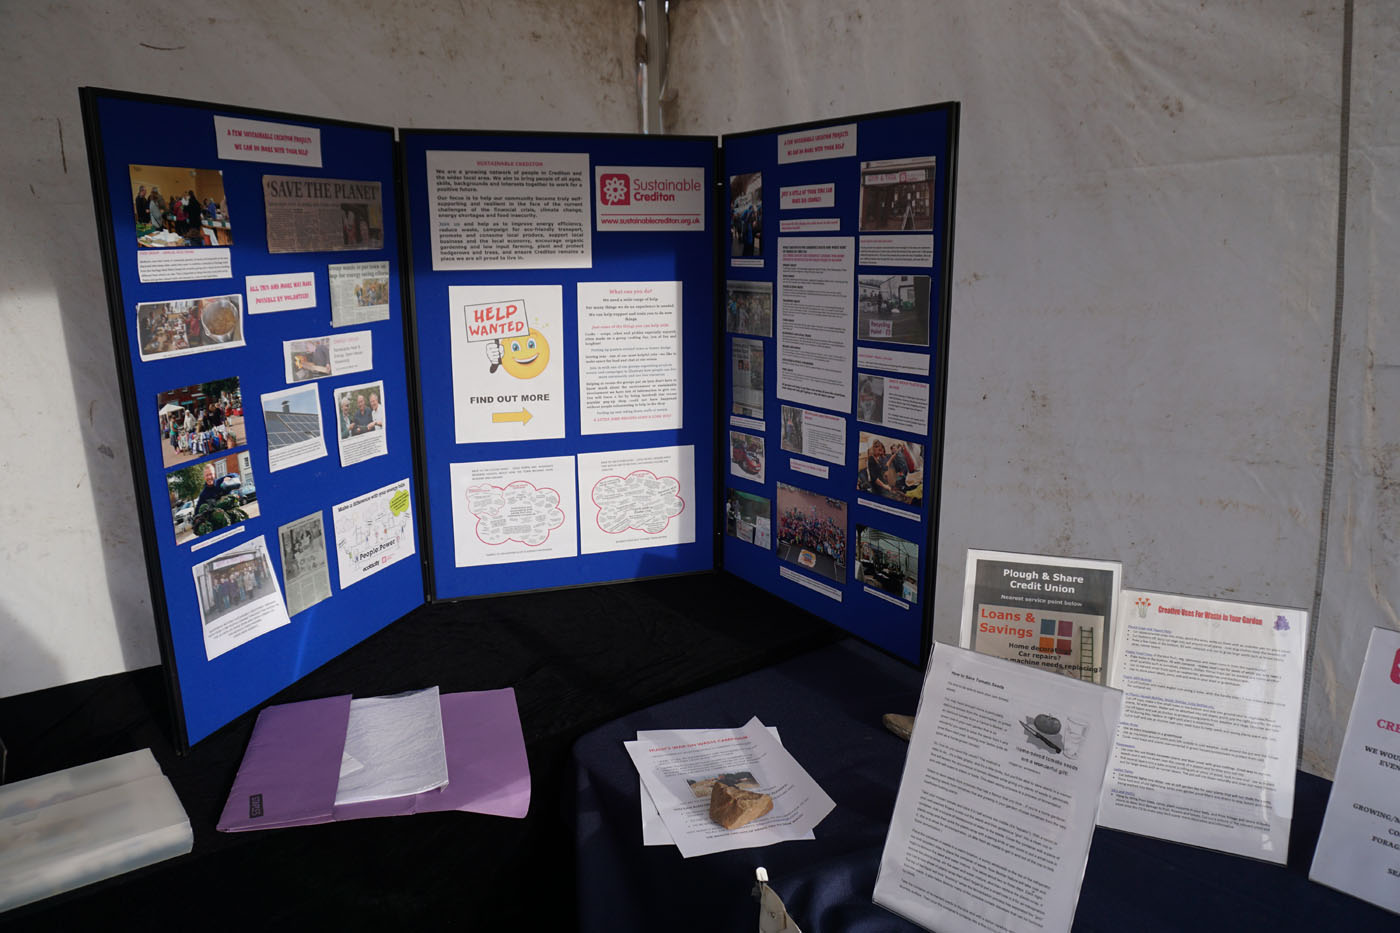 Photograph of the Sustainable Crediton stall